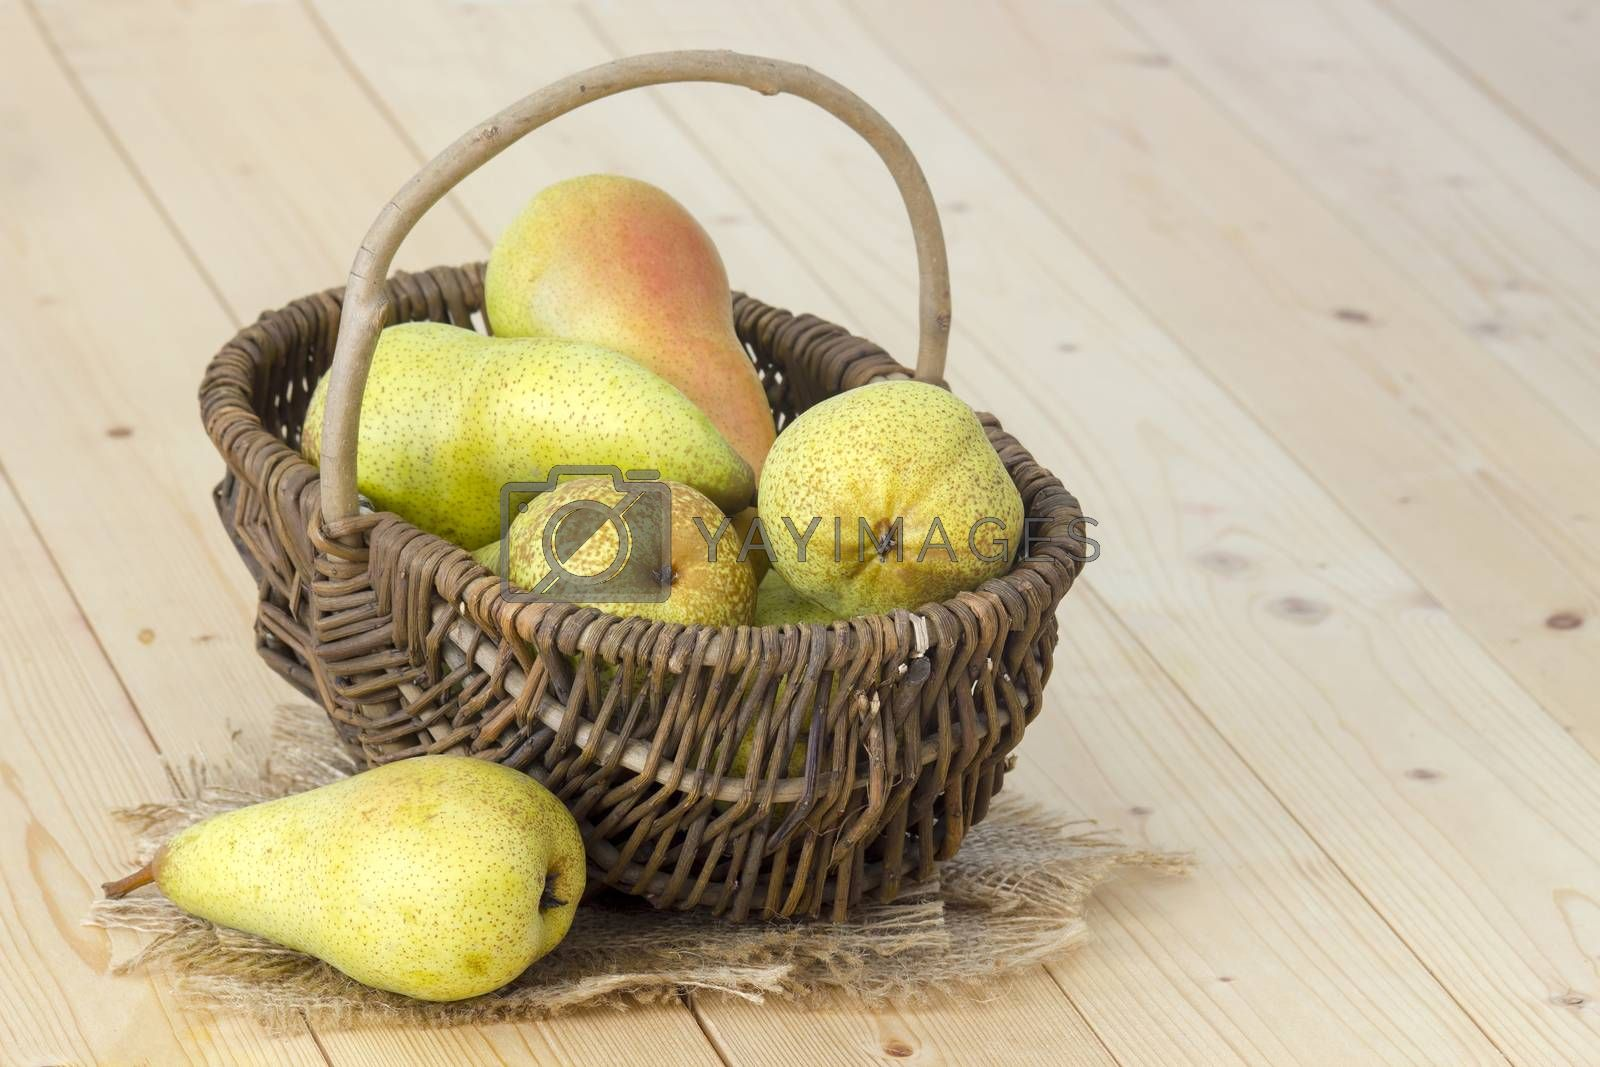 Juicy fresh pears in a basket wooden background